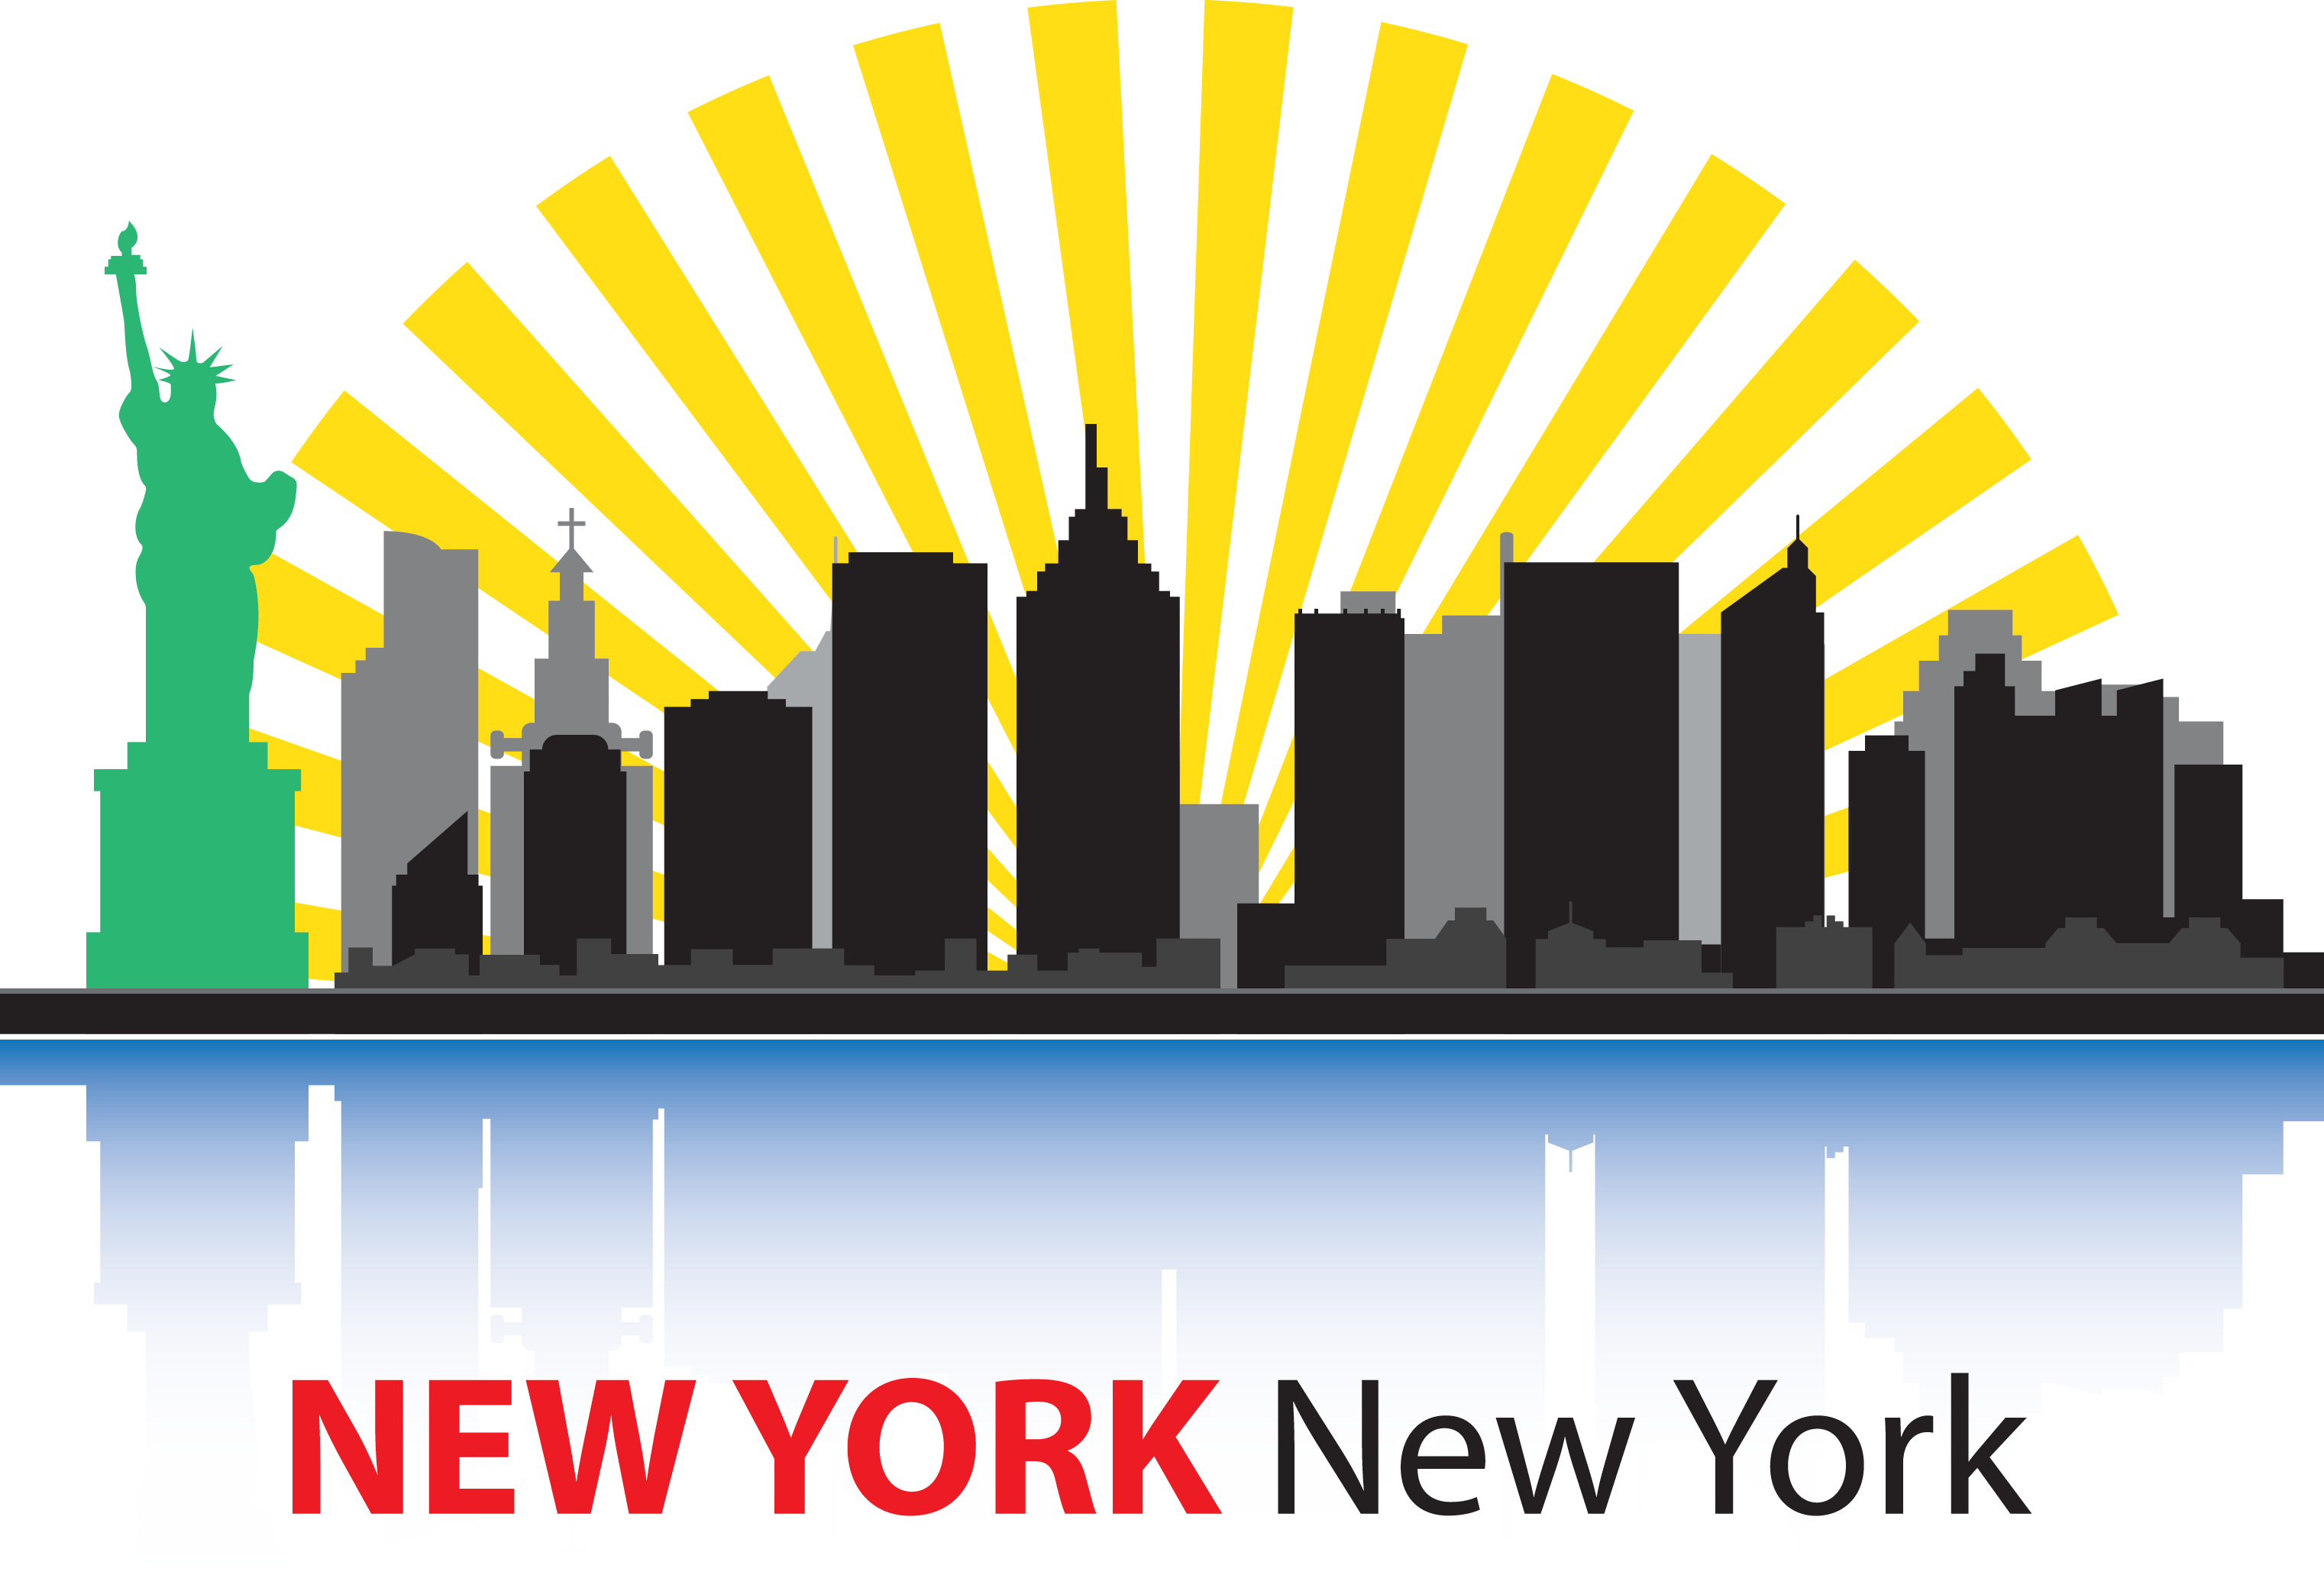 City clipart metropolitan area. Corporate team building new